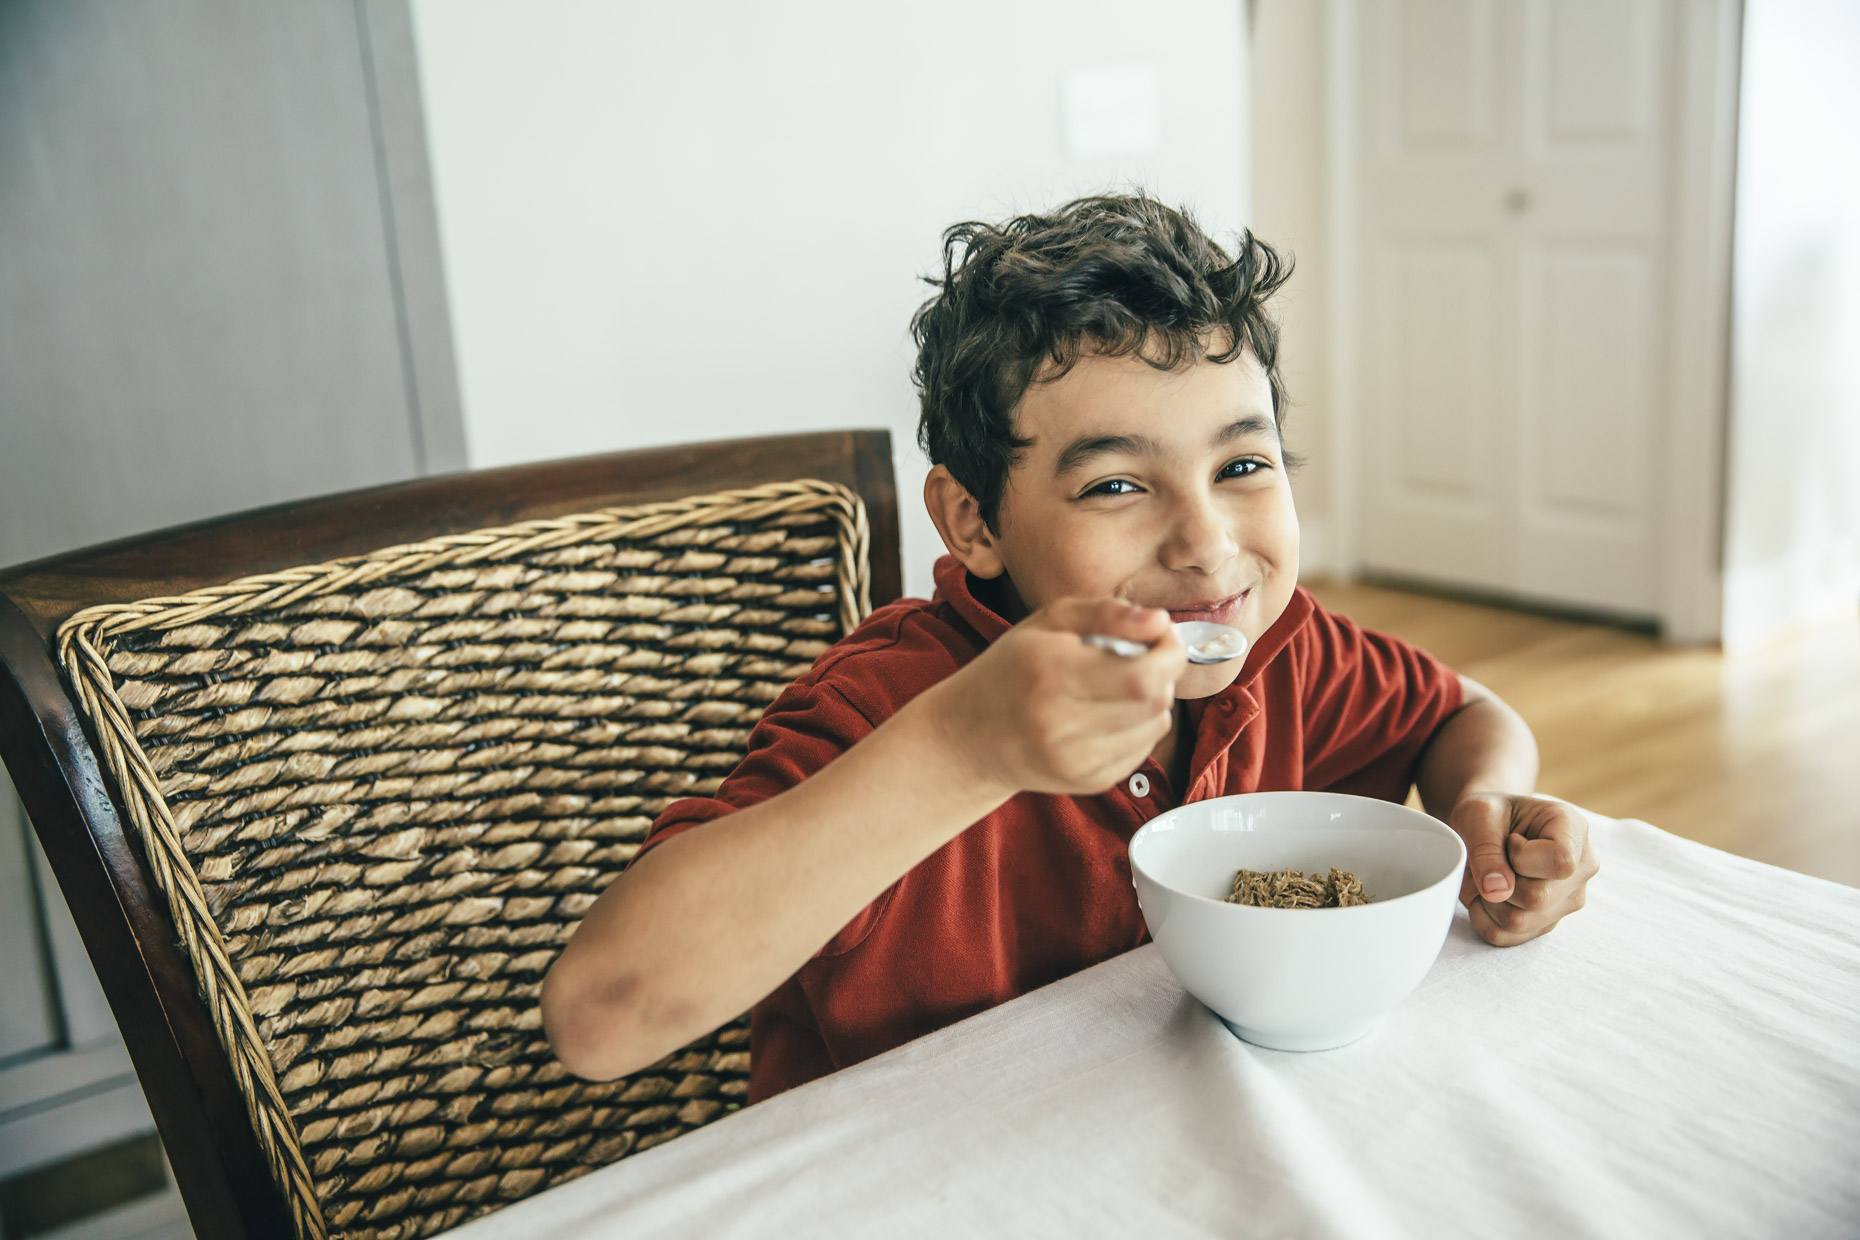 Smiling boy eating cereal